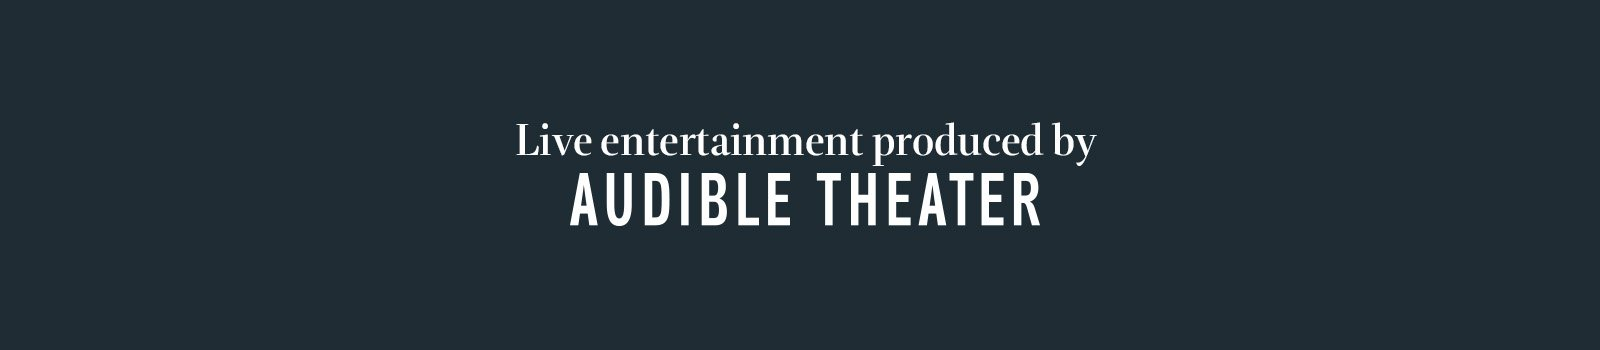 Live Entertainment produced by Audible Theater